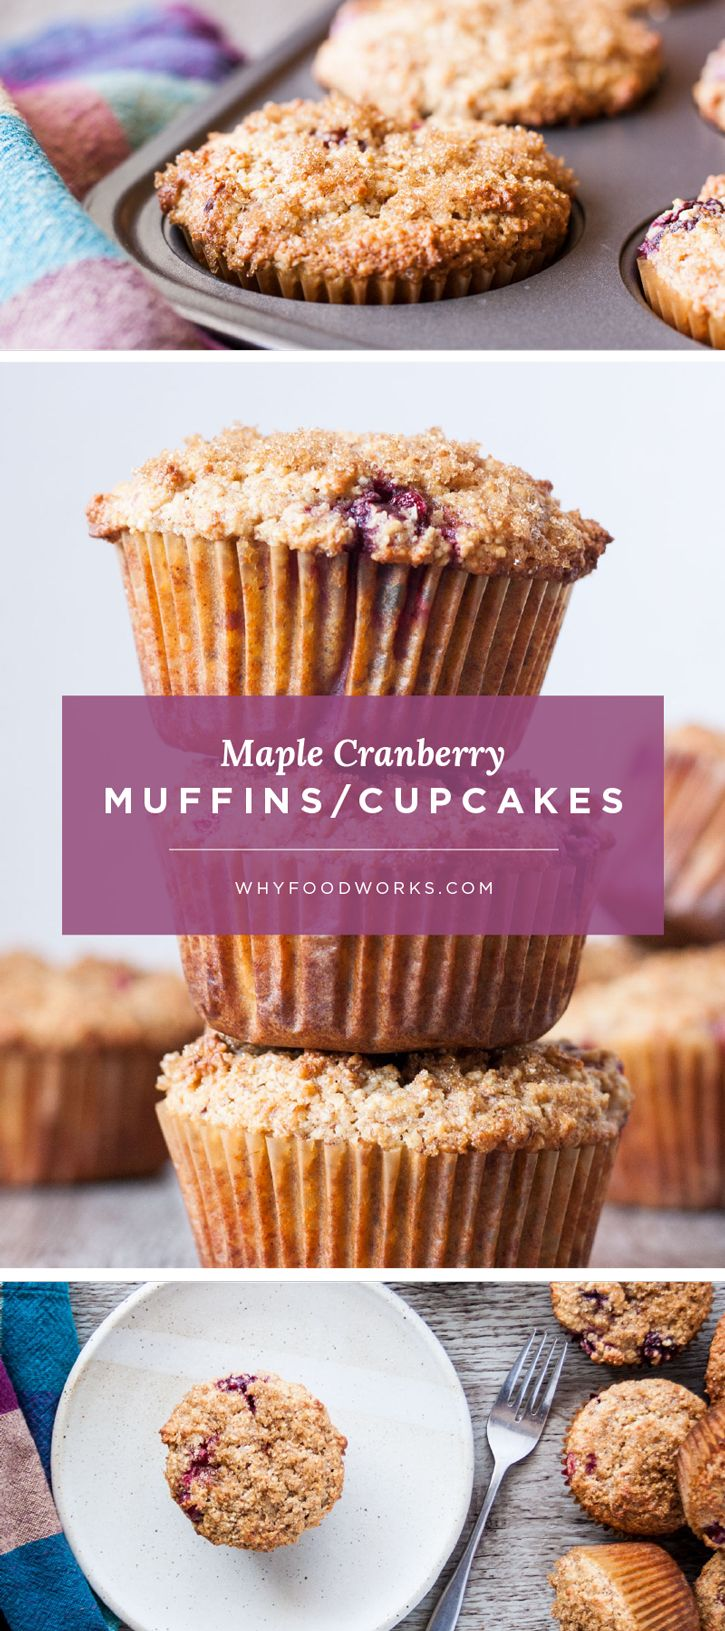 Julienne muffins: simple and affordable cooking recipes 5